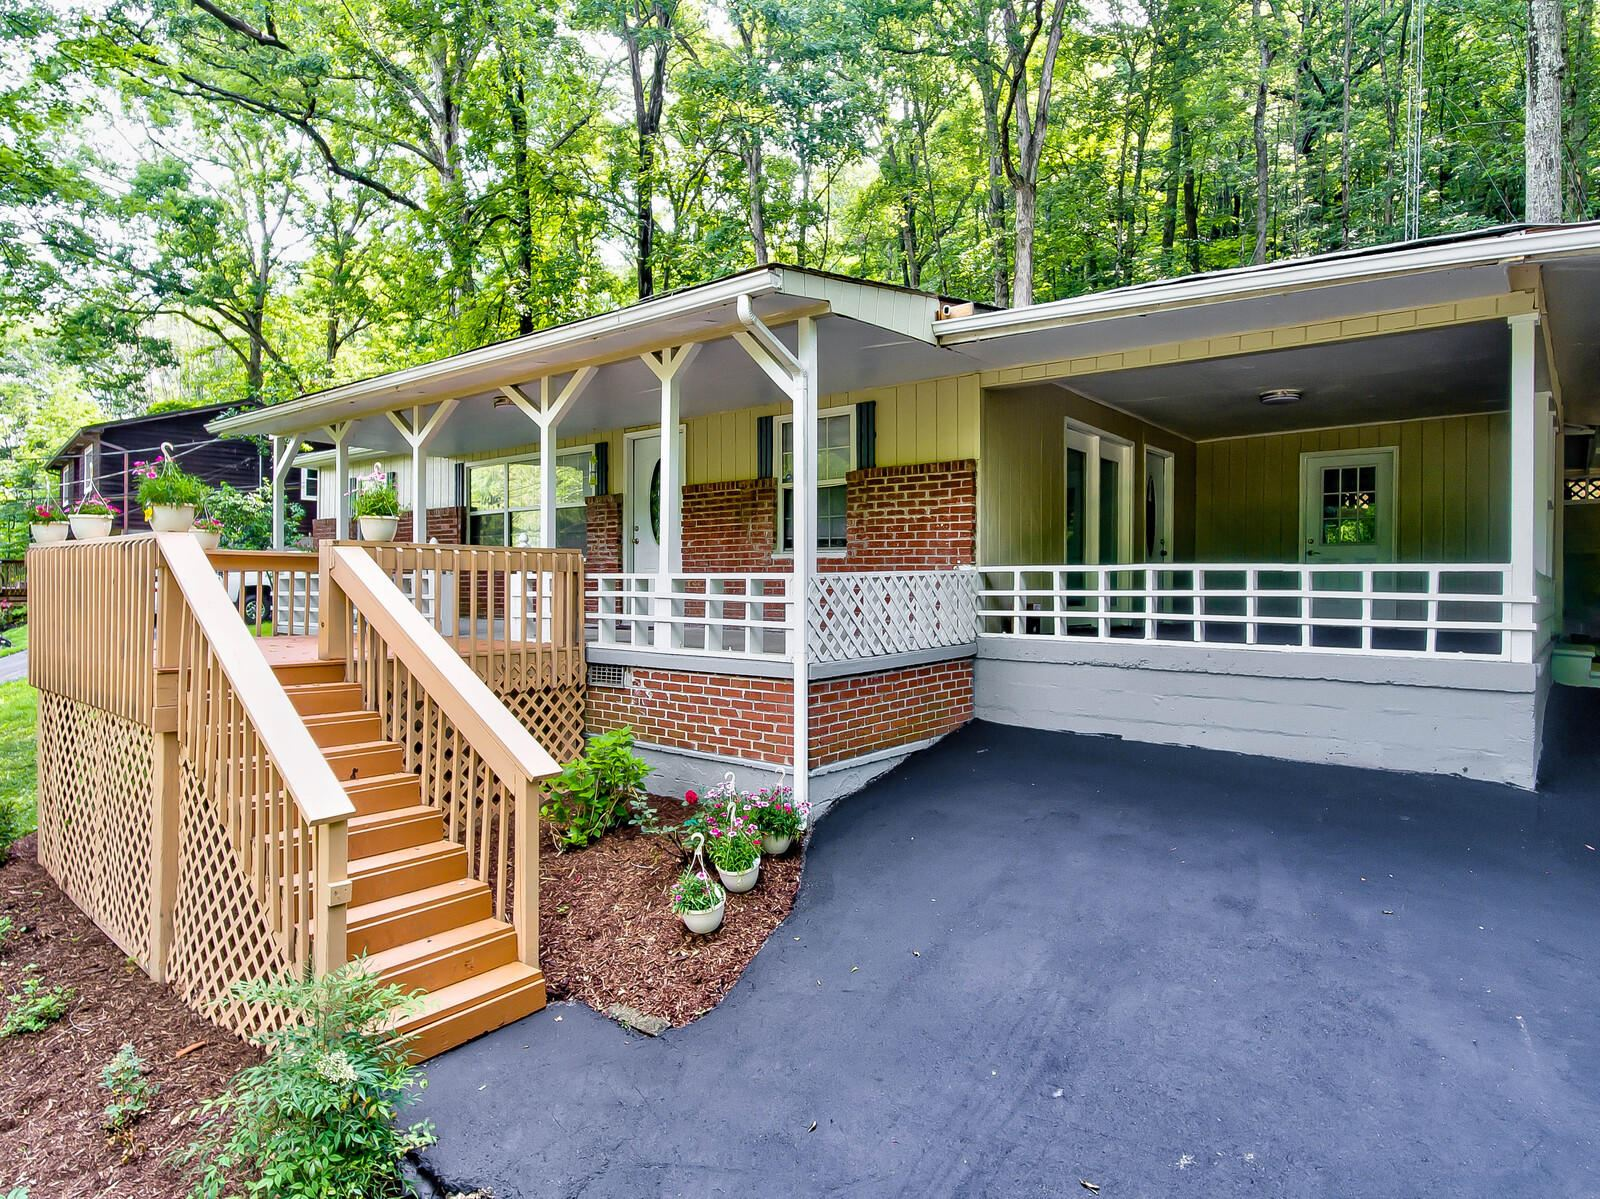 Photo of 7944 Brownvue Rd, Knoxville, TN 37931 (MLS # 1122093)